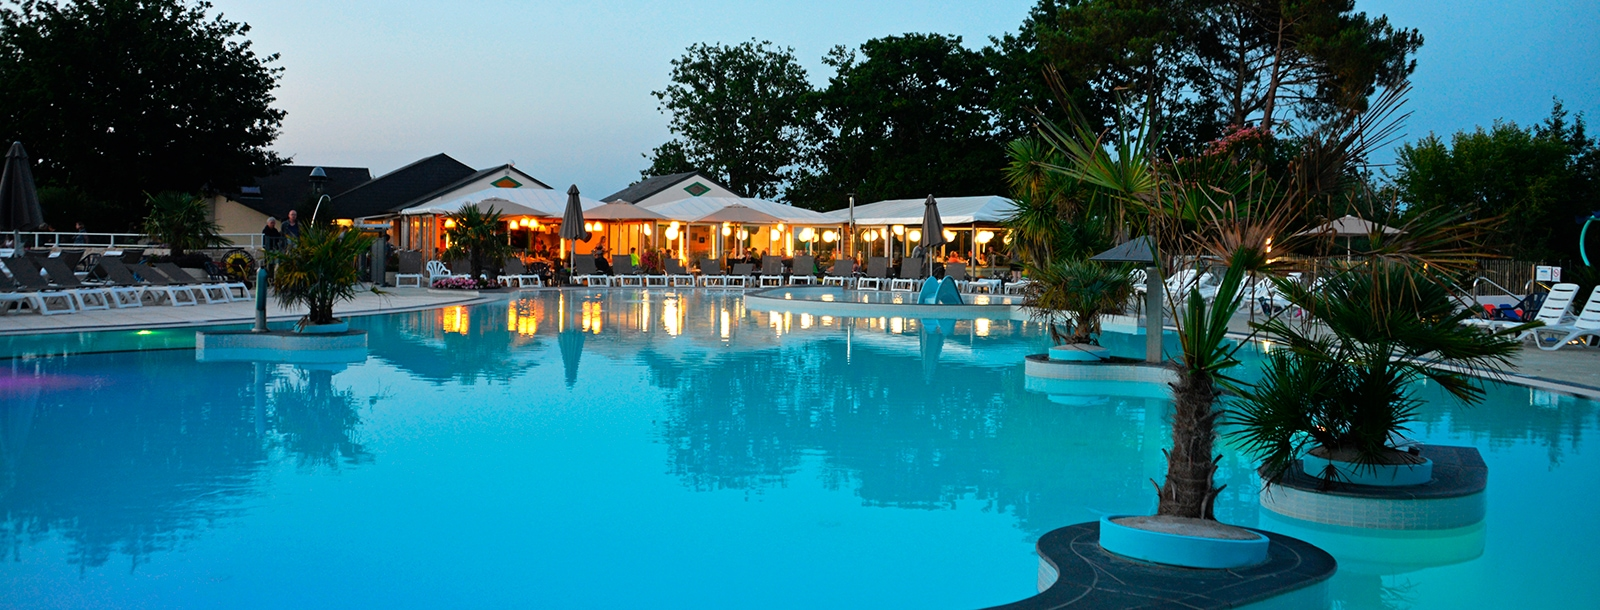 Relax at the restaurant by the pool